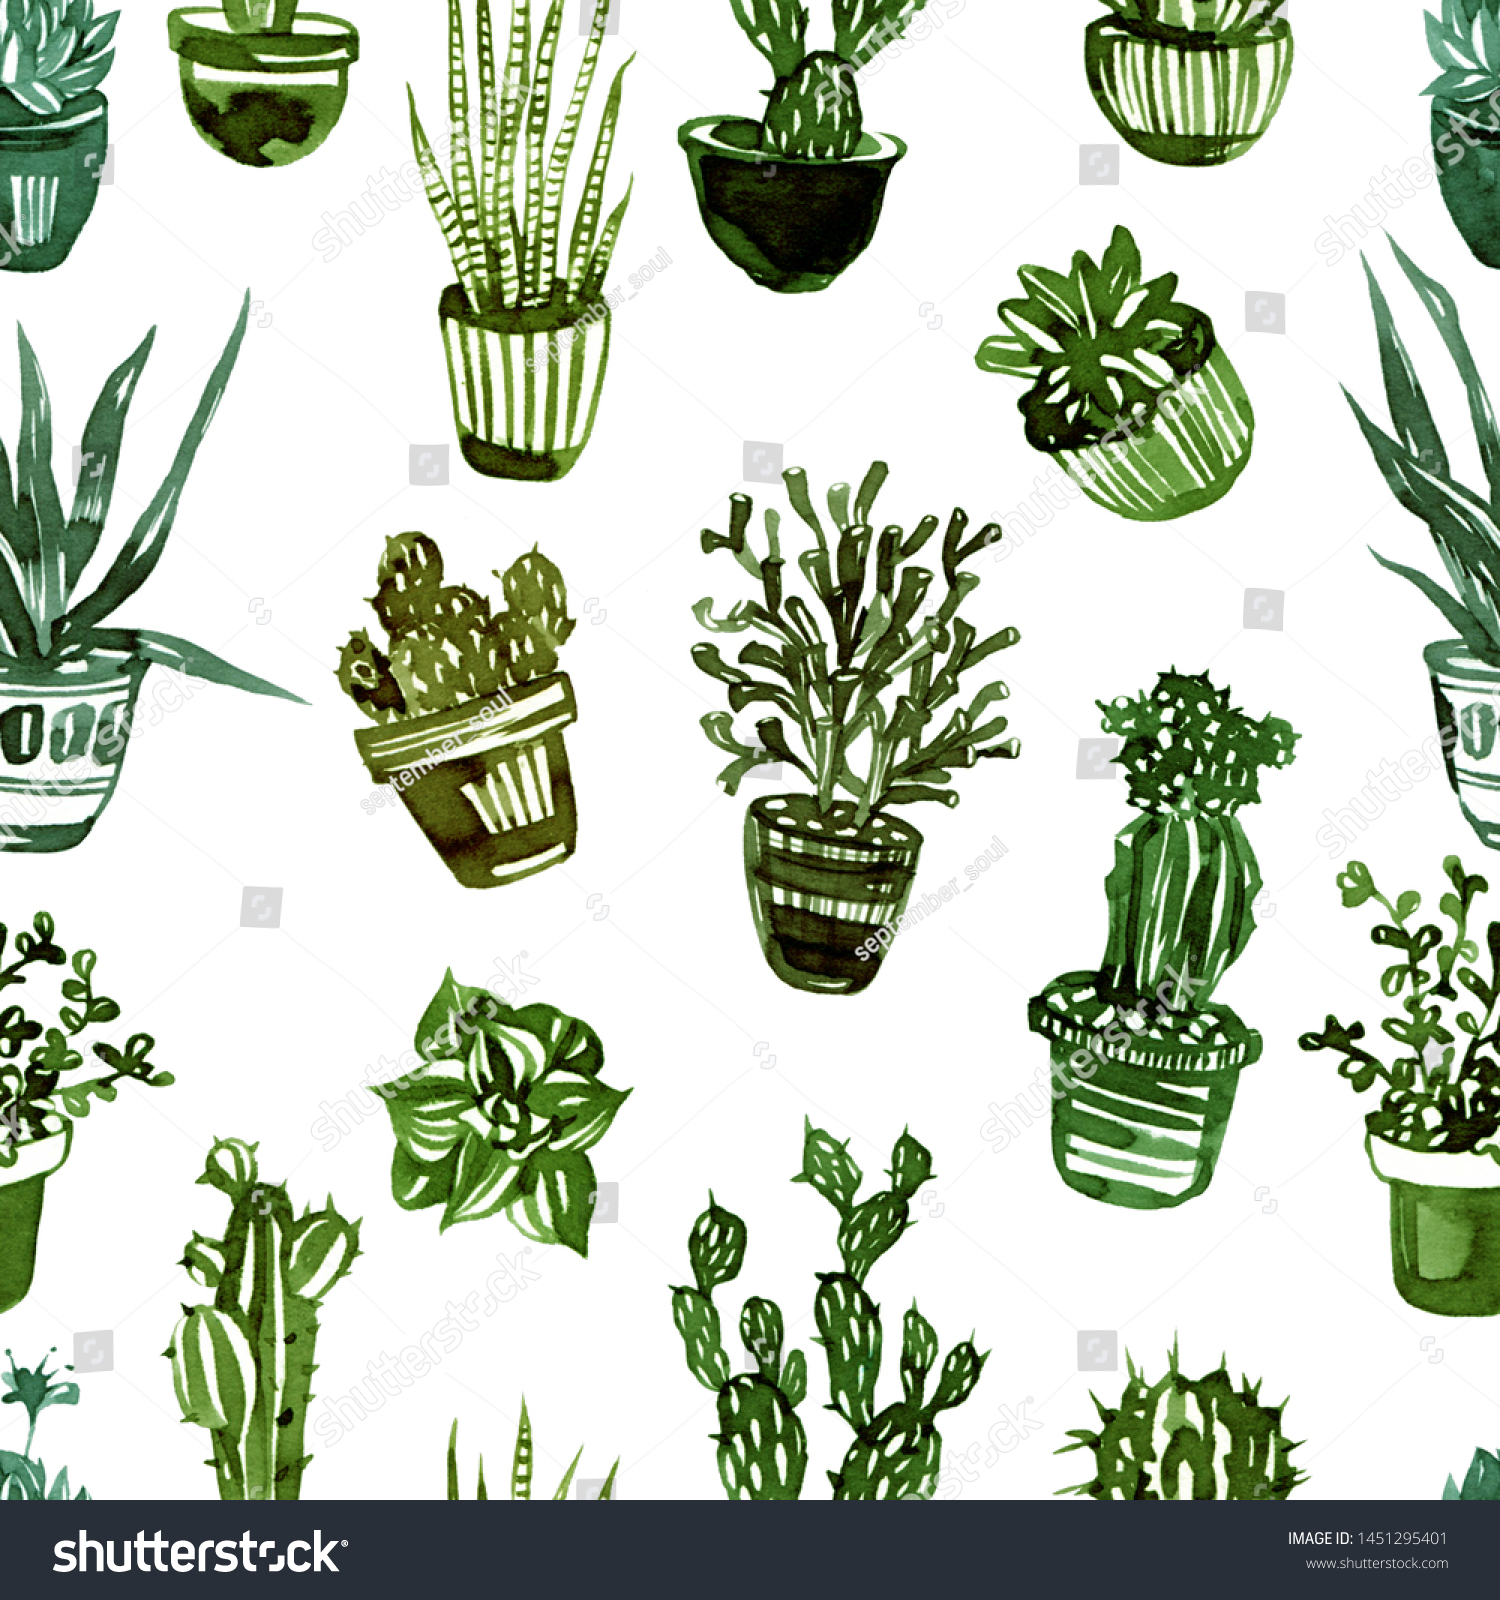 Hand Drawn Pattern Different Types Succulents Stock Illustration 1451295401